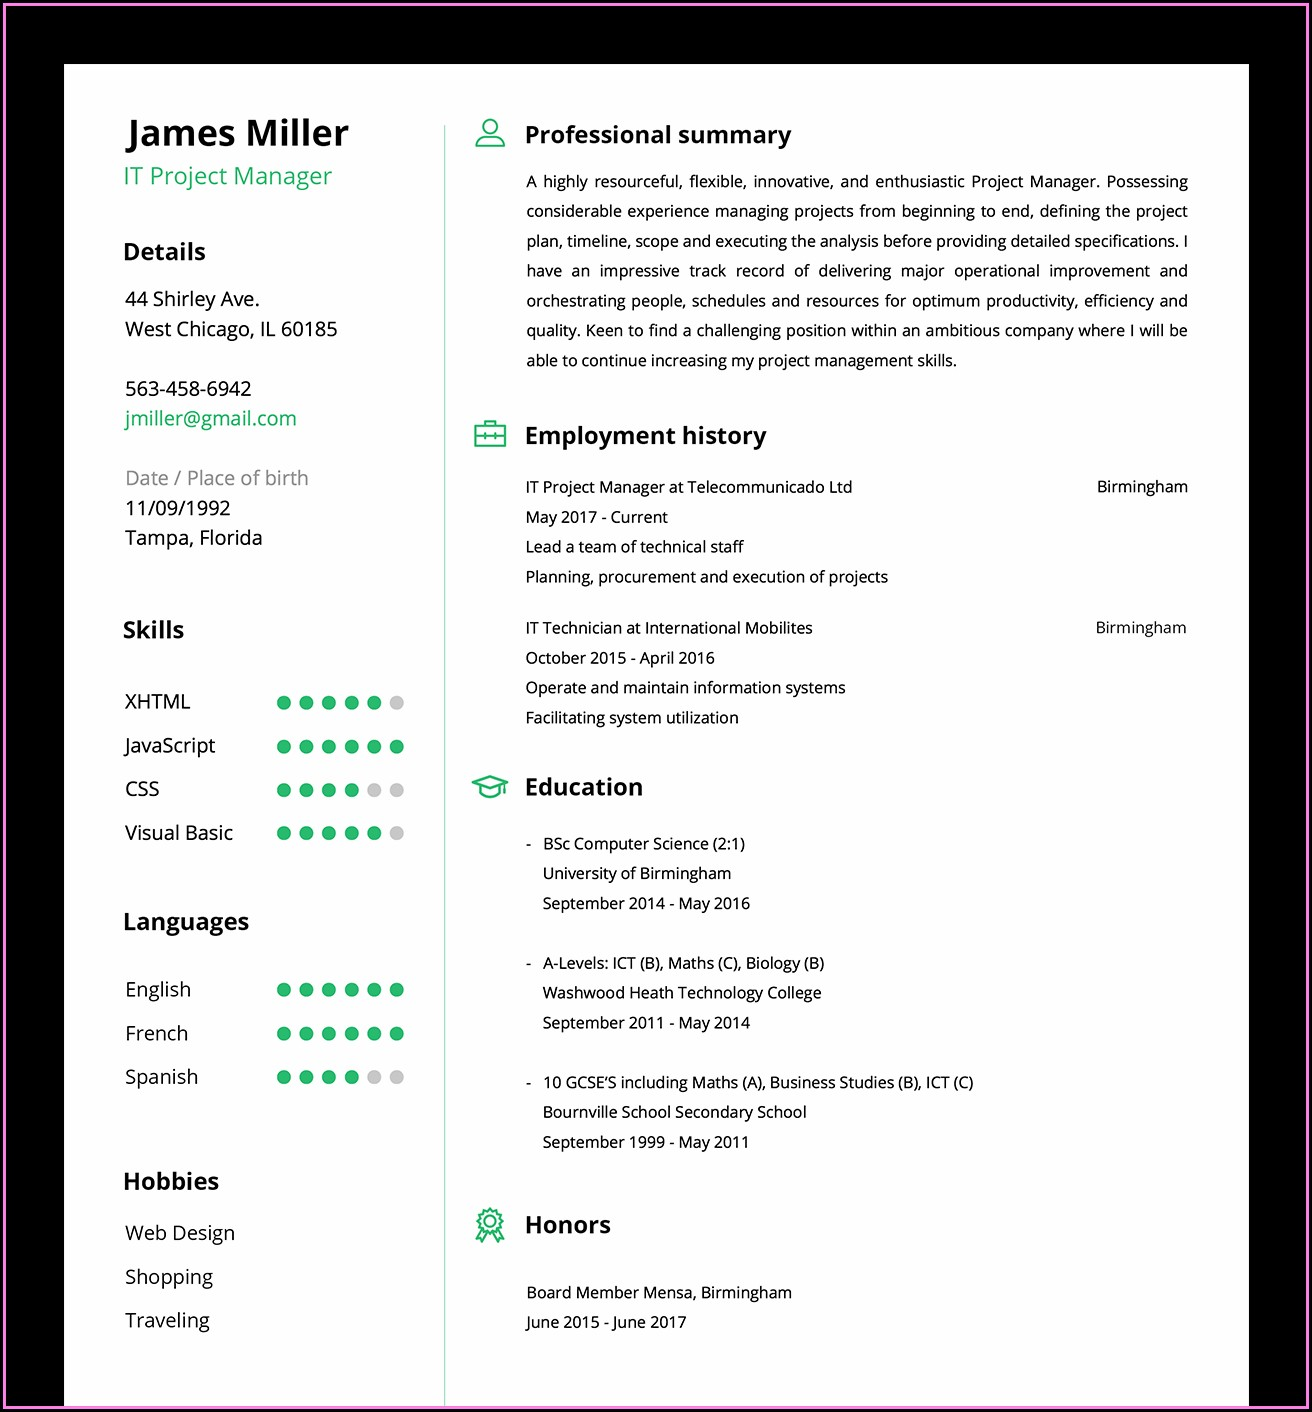 Build Your Own Resume Online For Free